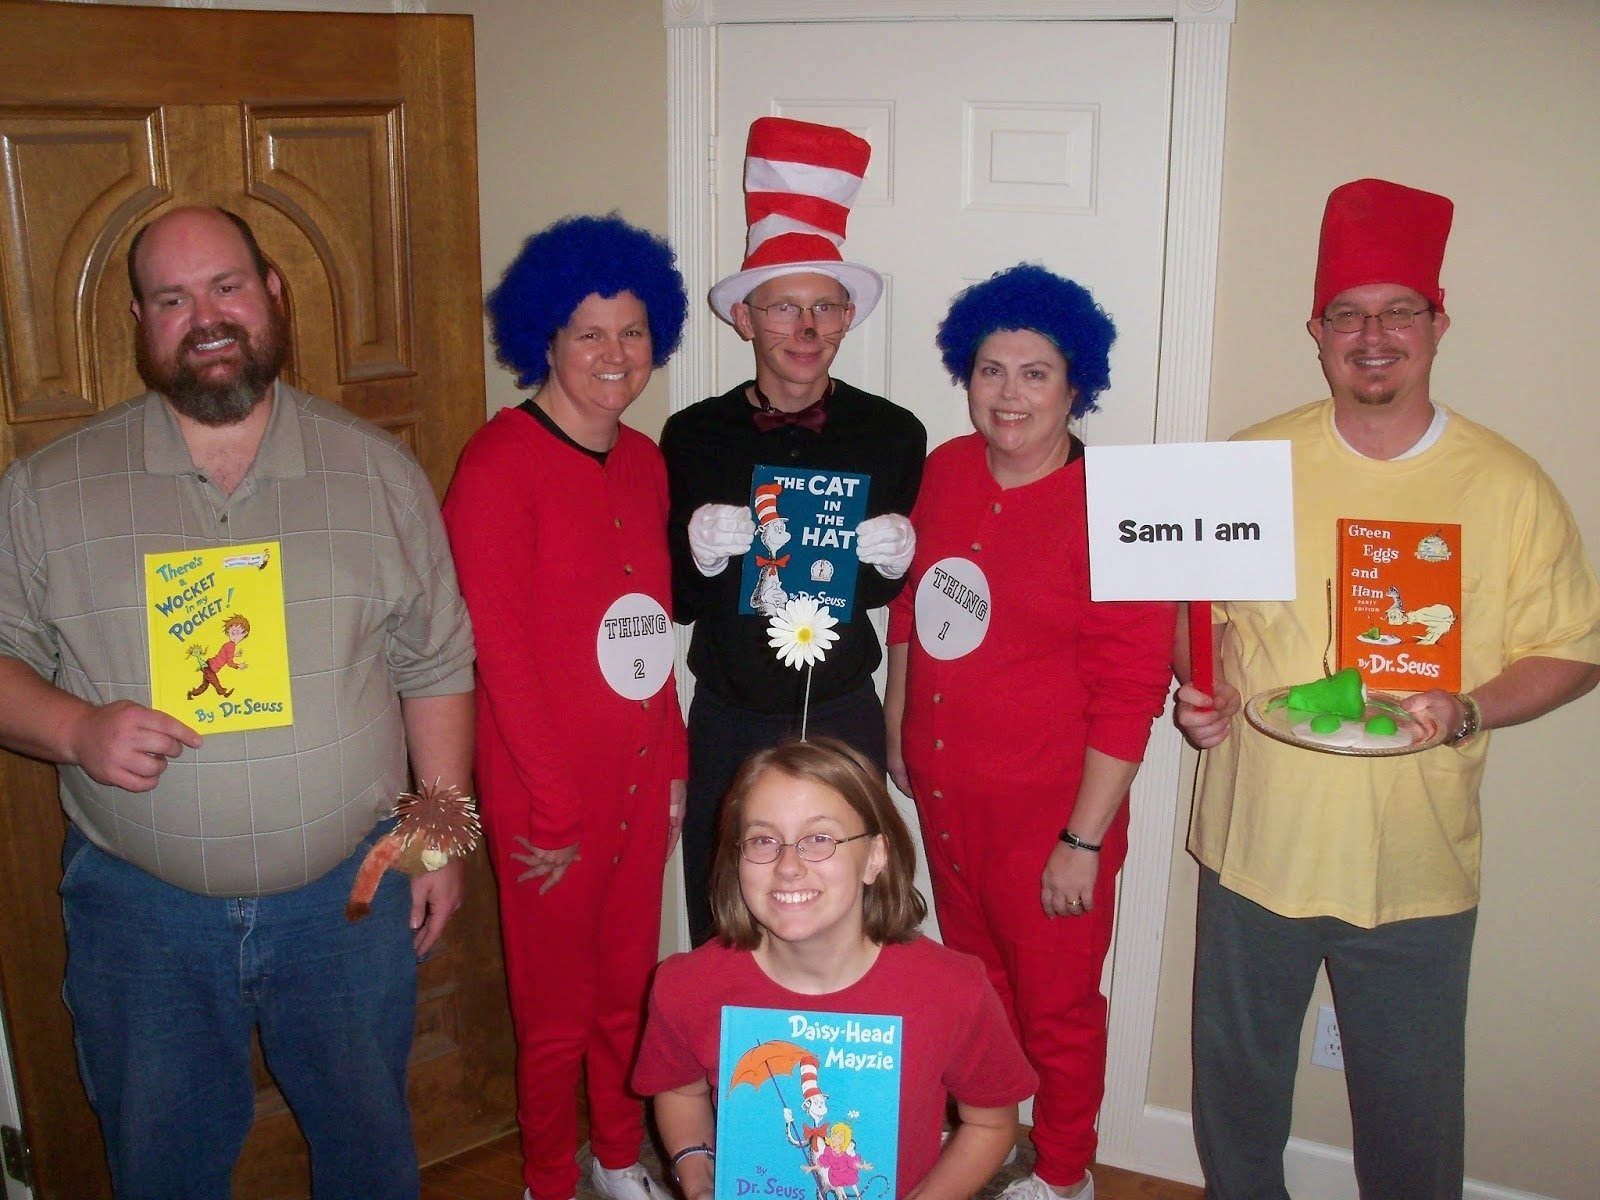 10 Nice Dr Seuss Character Costume Ideas everybodys aunt andi halloween costume and party ideas dr seuss 2020